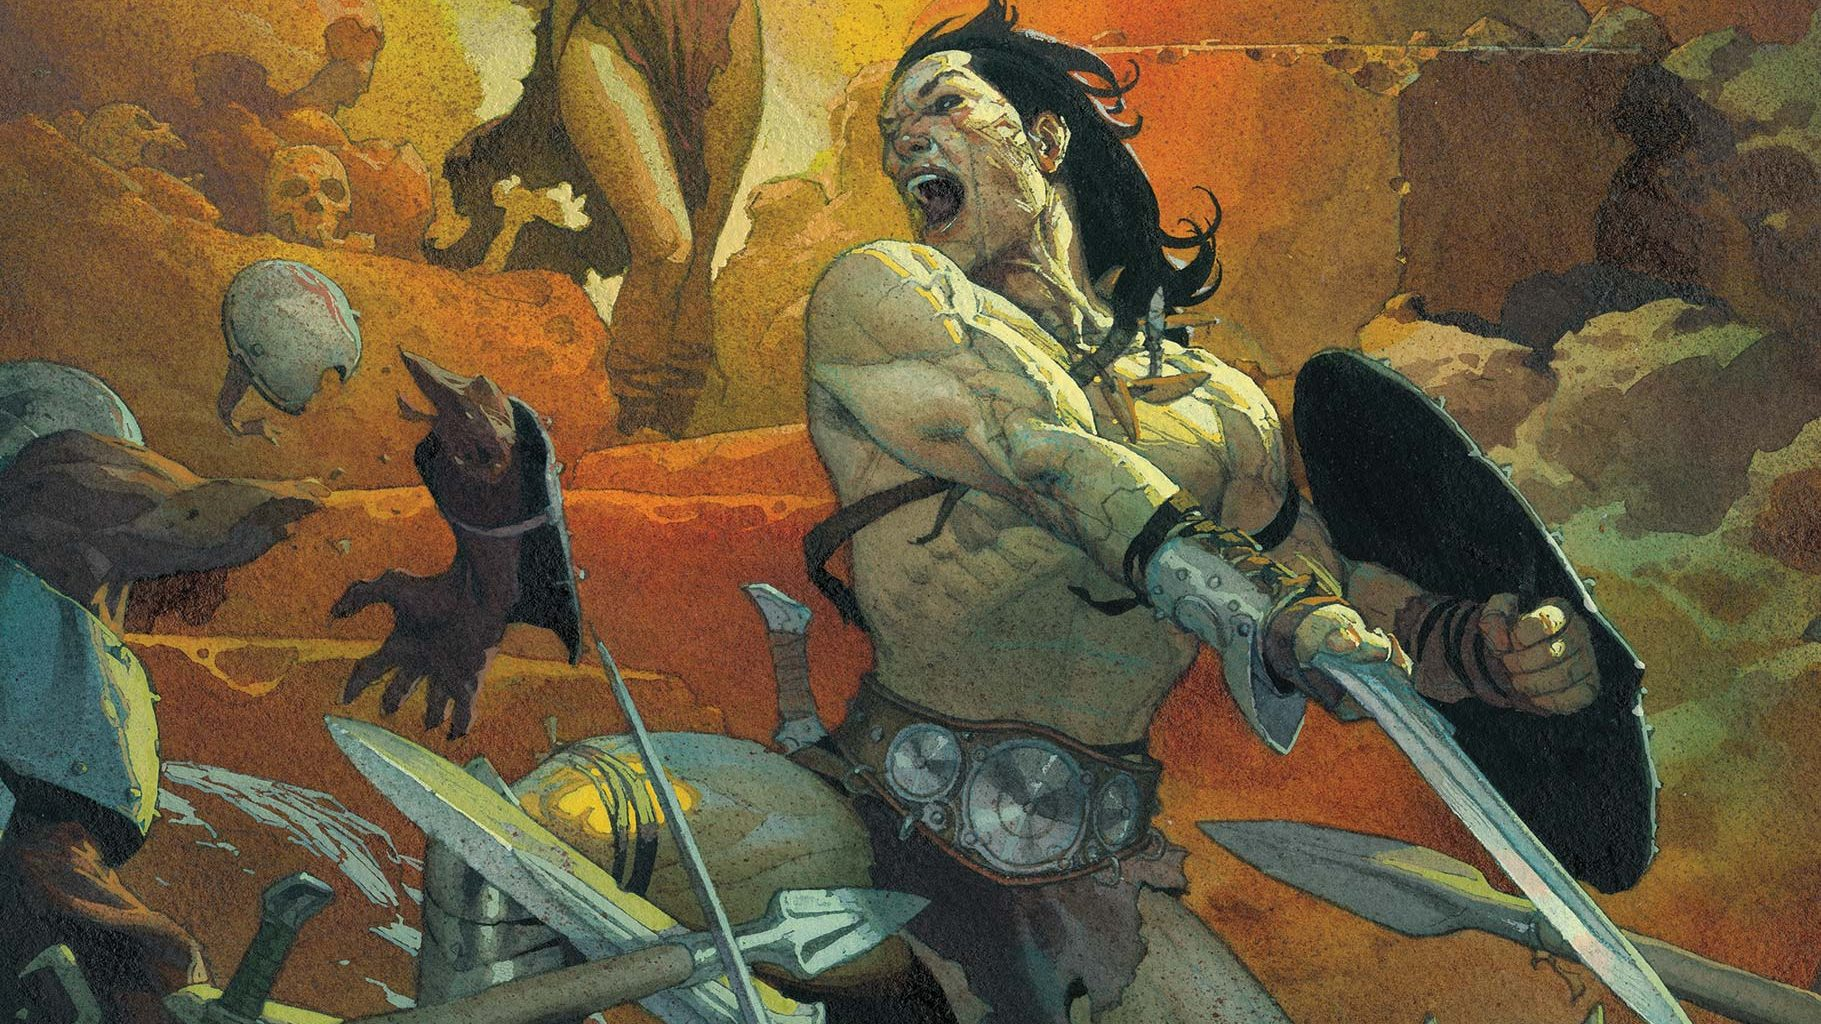 Conan the Barbadian is mid battle with a deadly sorceress behind him.